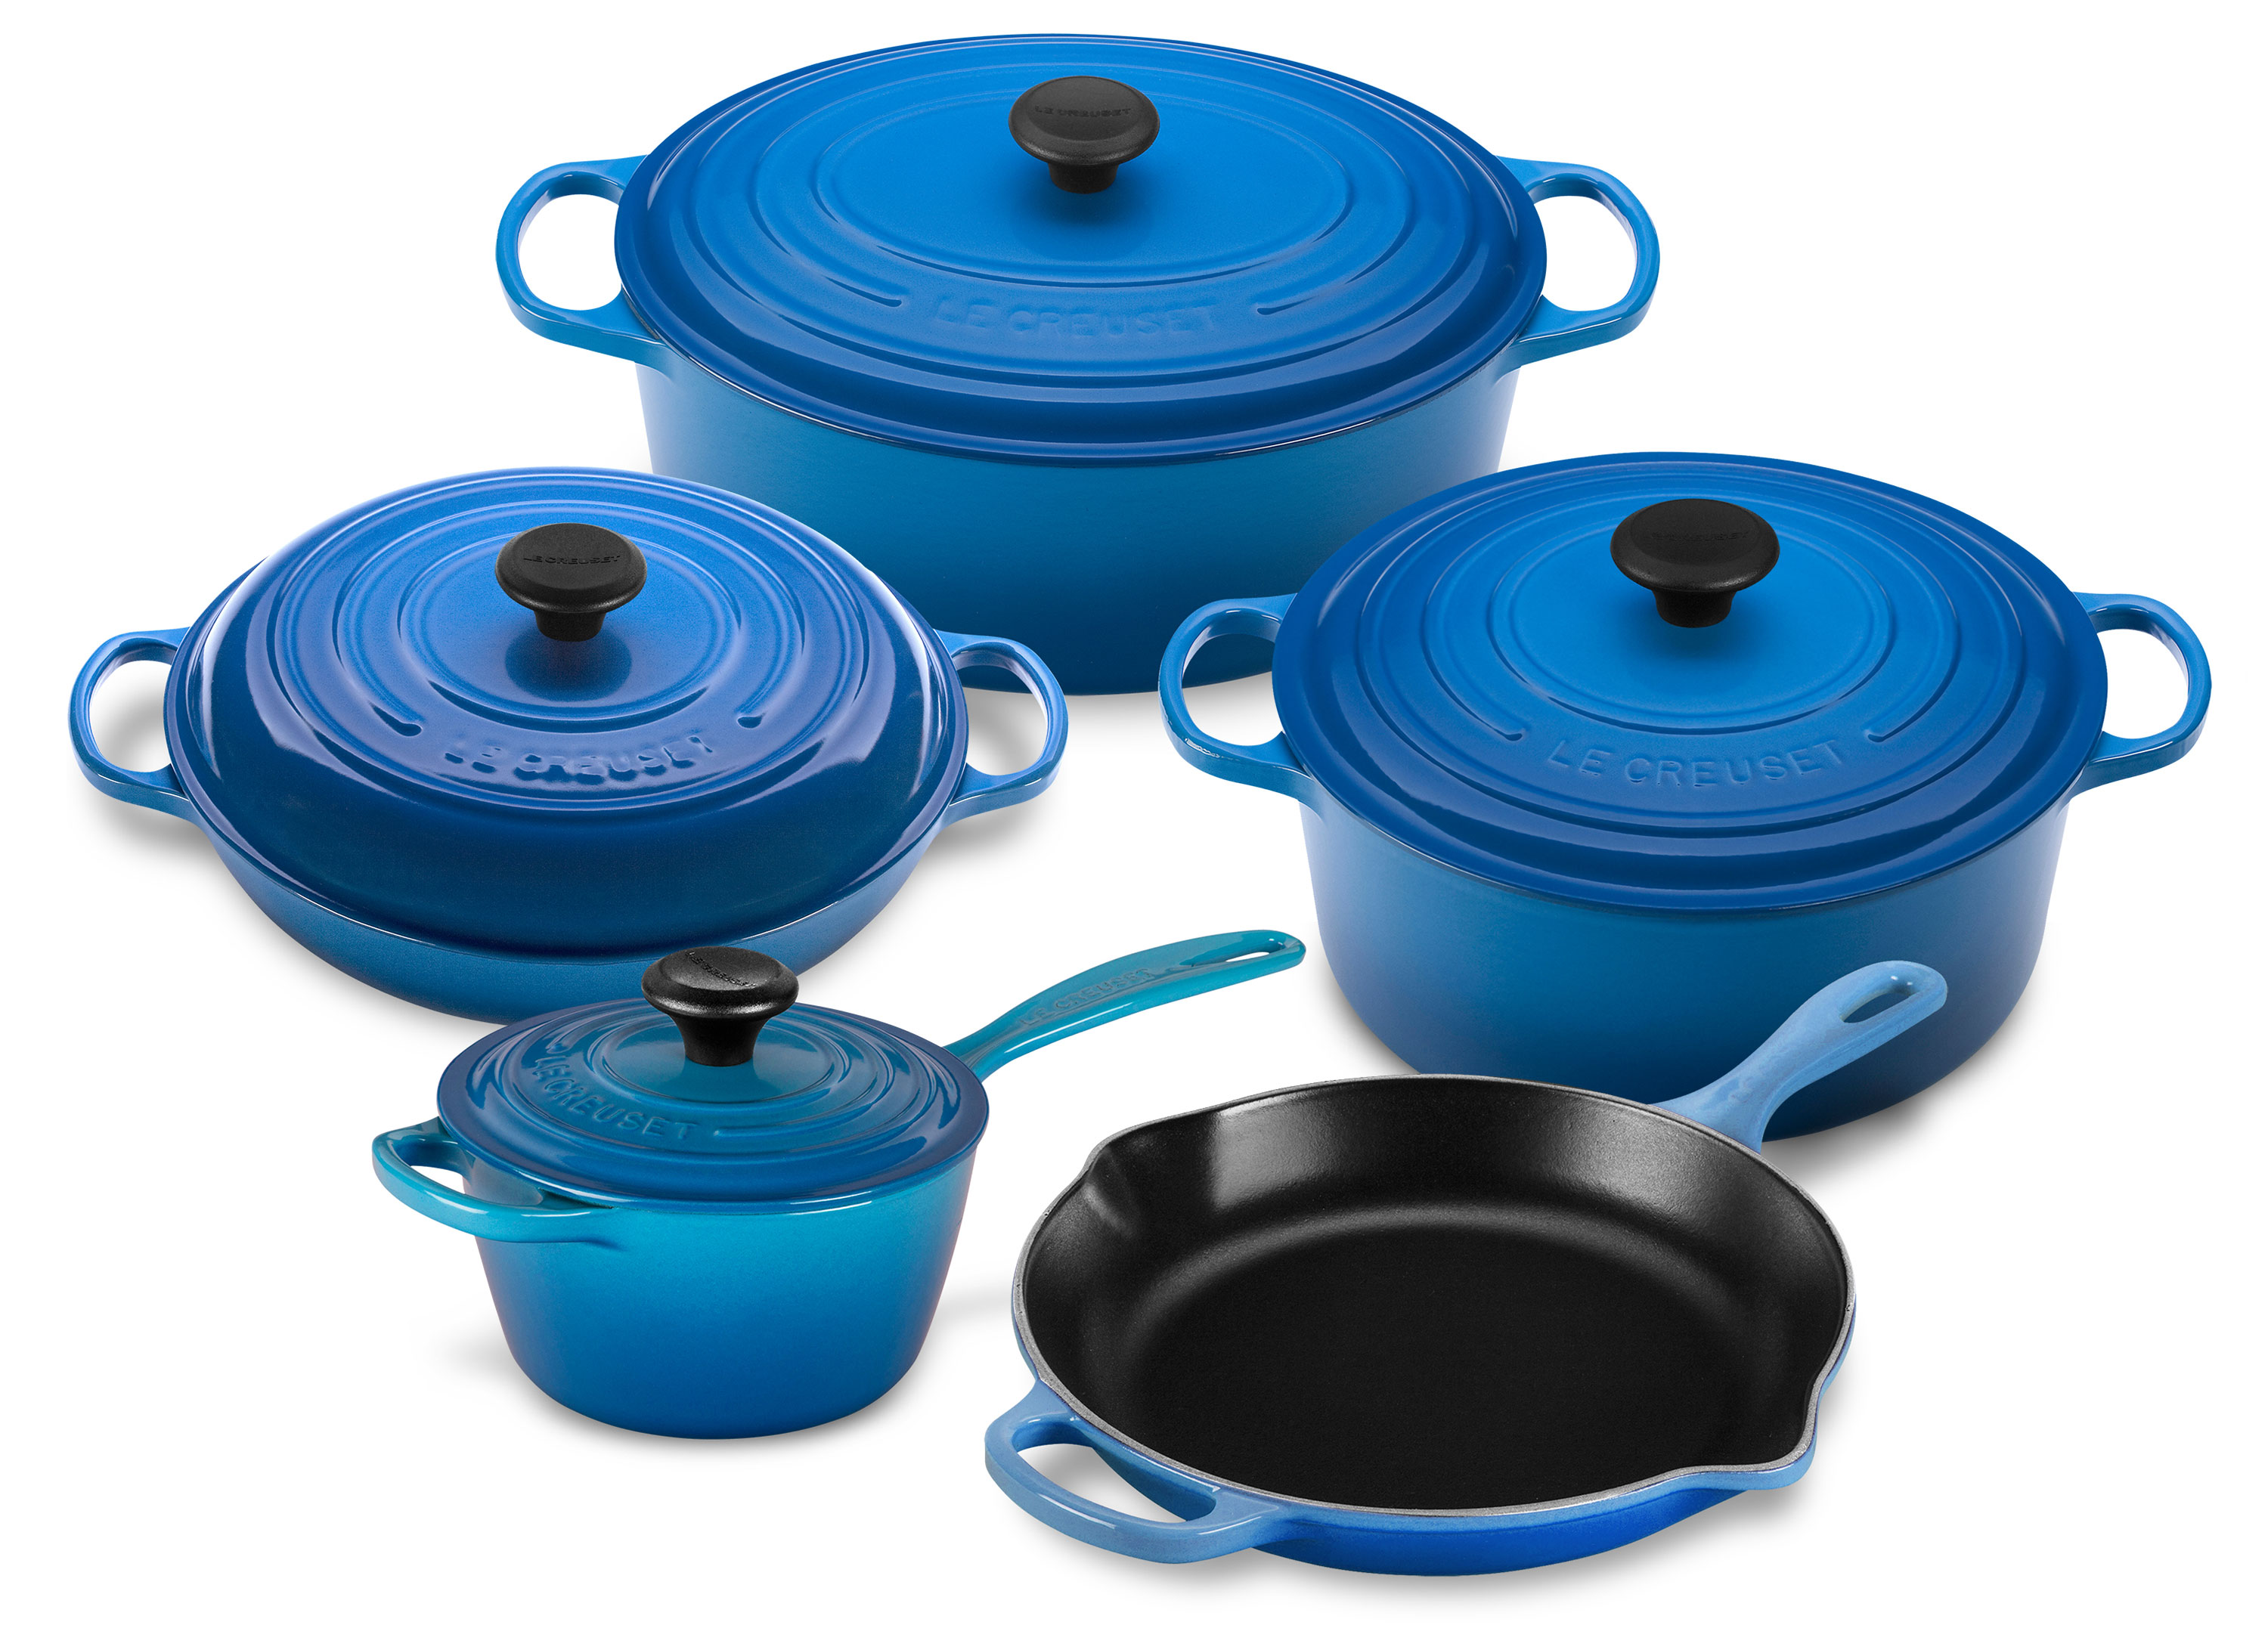 le creuset cast iron cookware set 9 piece marseille blue signature cutlery and more. Black Bedroom Furniture Sets. Home Design Ideas